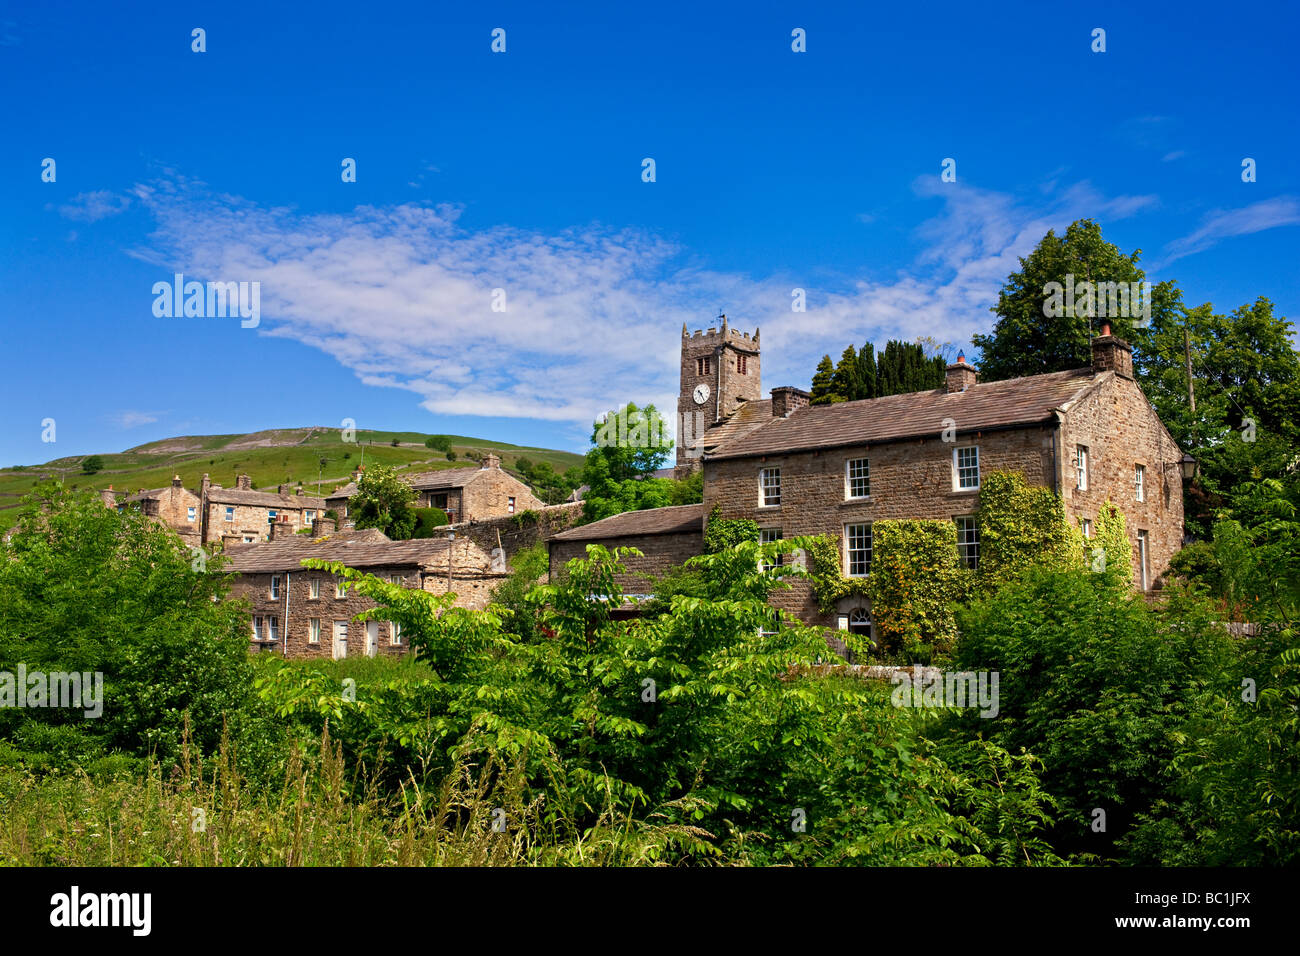 The village of Muker, in the Yorkshire Dales - Stock Image